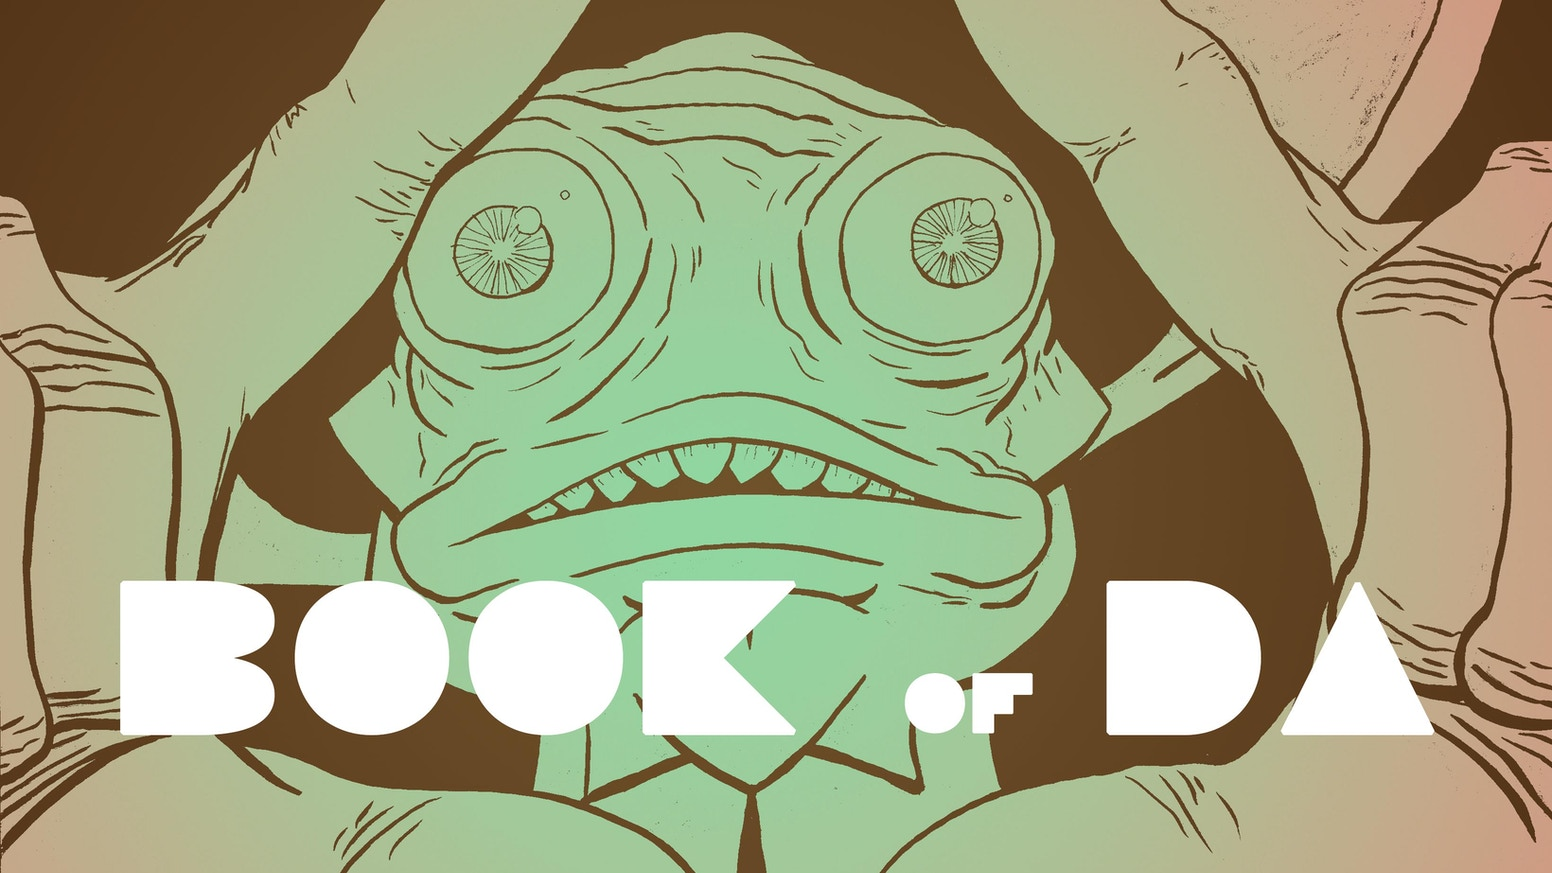 Cloth-Bound Graphic Novel about a Mysterious Being Who Controls the Emotions of the Sea, and the Deep-sea Diver Who Dares Defy Him.